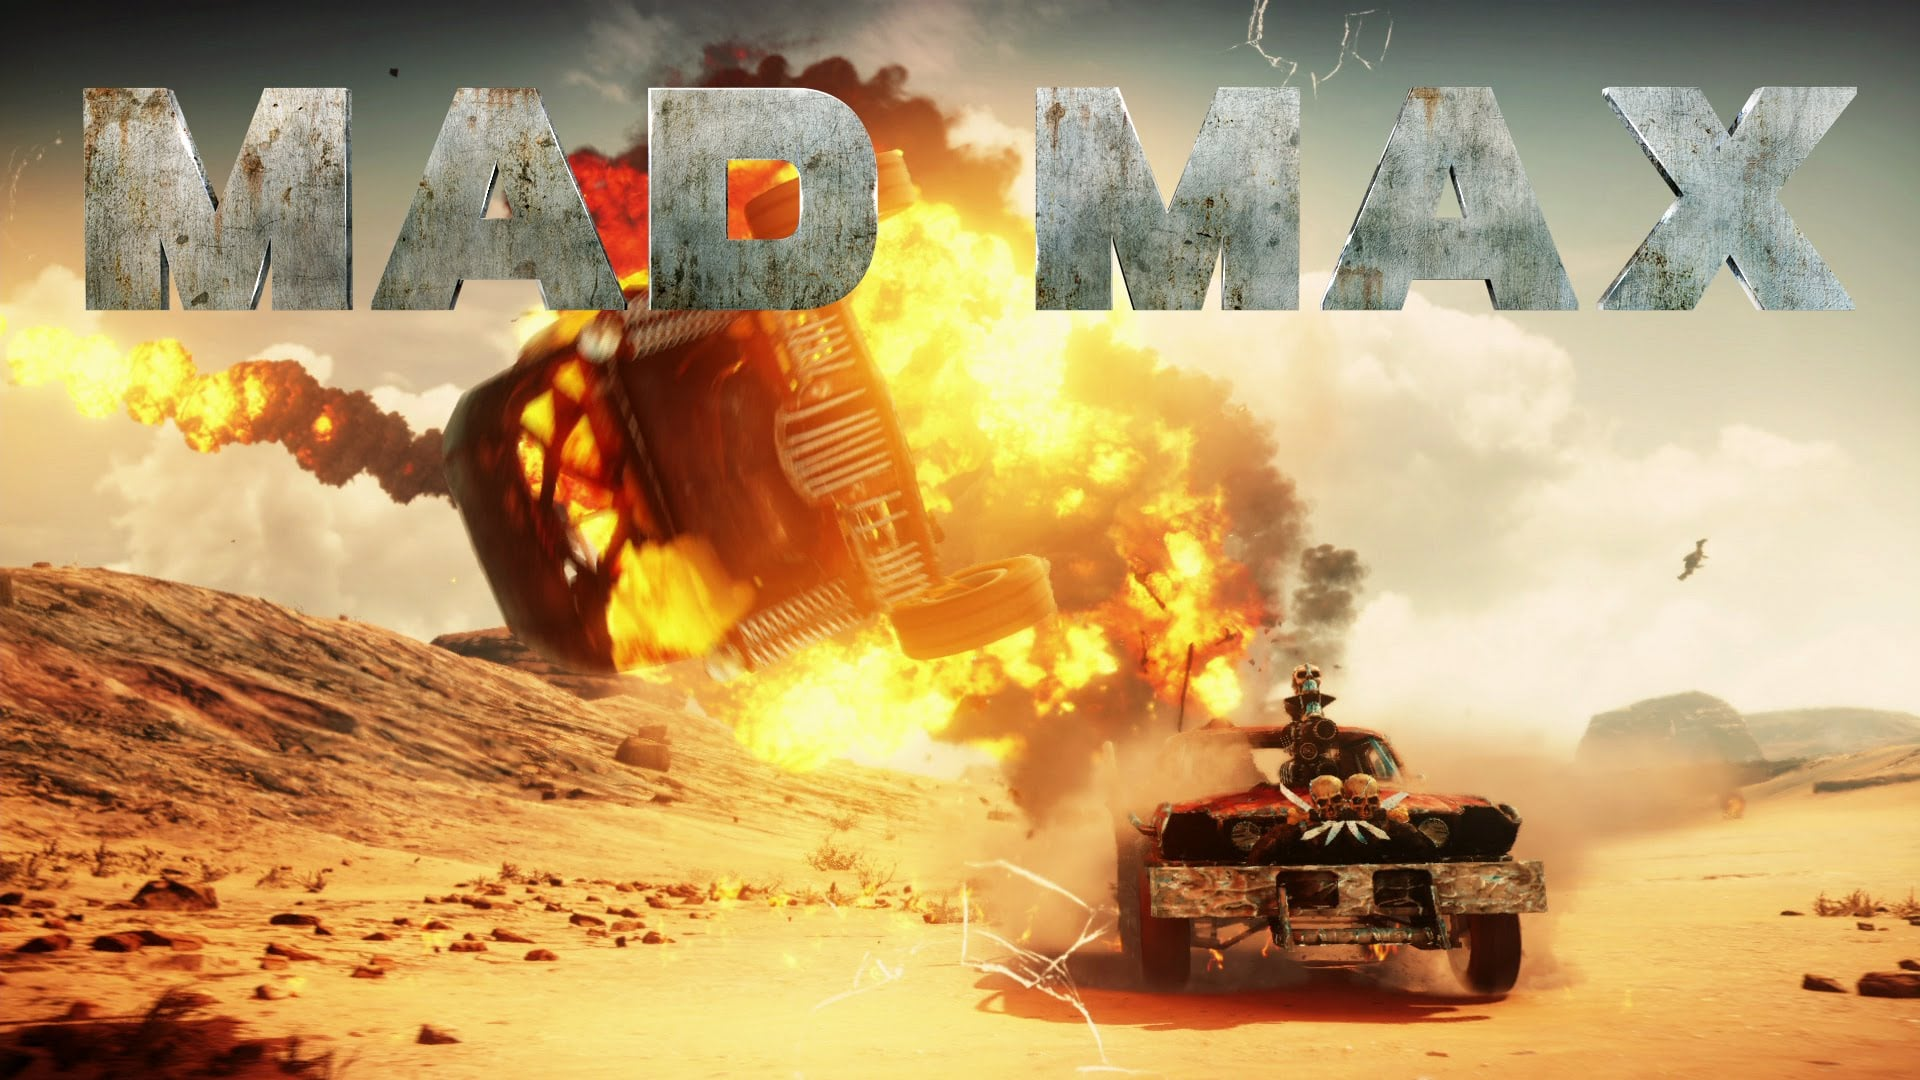 Mad Max for PC (Windows 10) Download